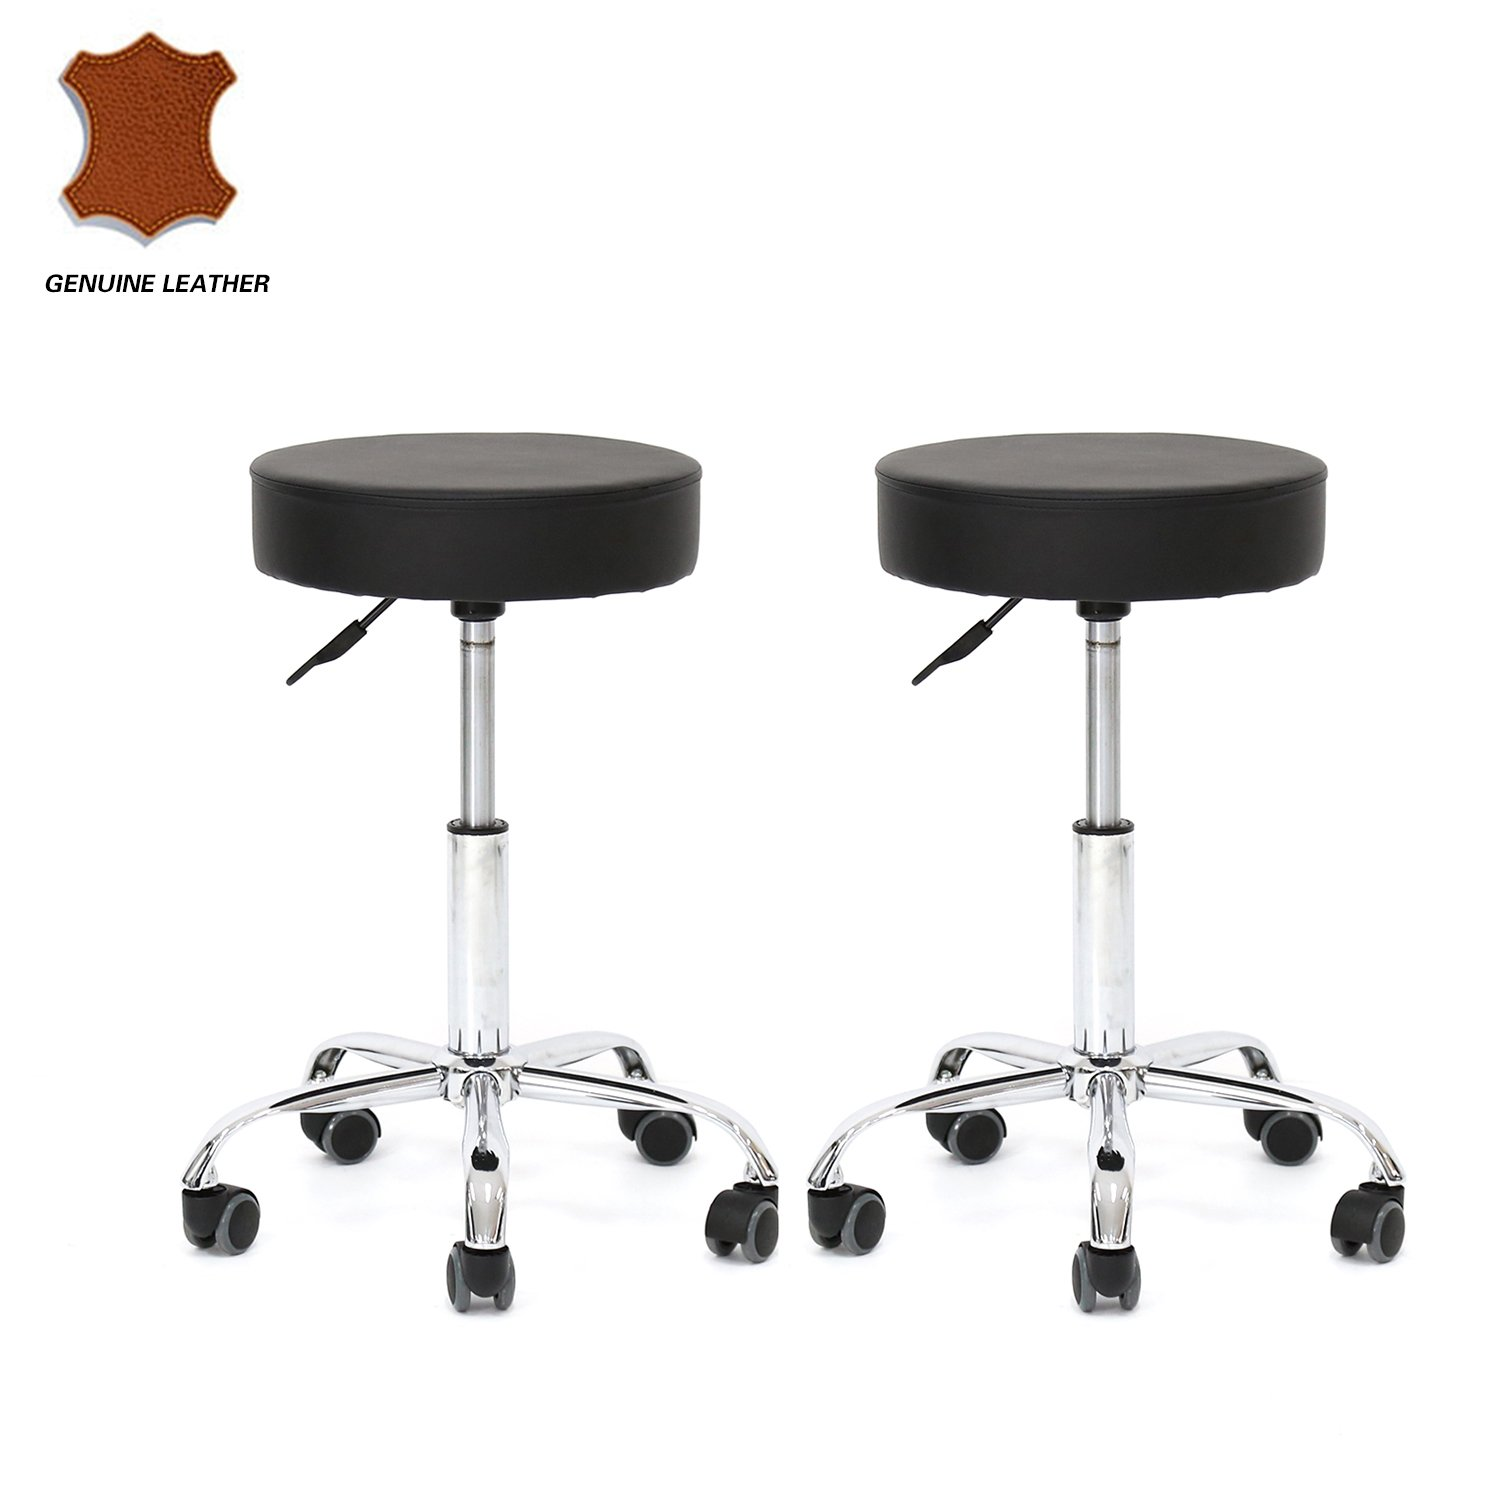 Kinbor Set of 2 Genuine Leather Adjustable Hydraulic Rolling Swivel Bar Stool Tattoo Facial Massage Spa Stool Chairs (Black) by Kinbor (Image #1)